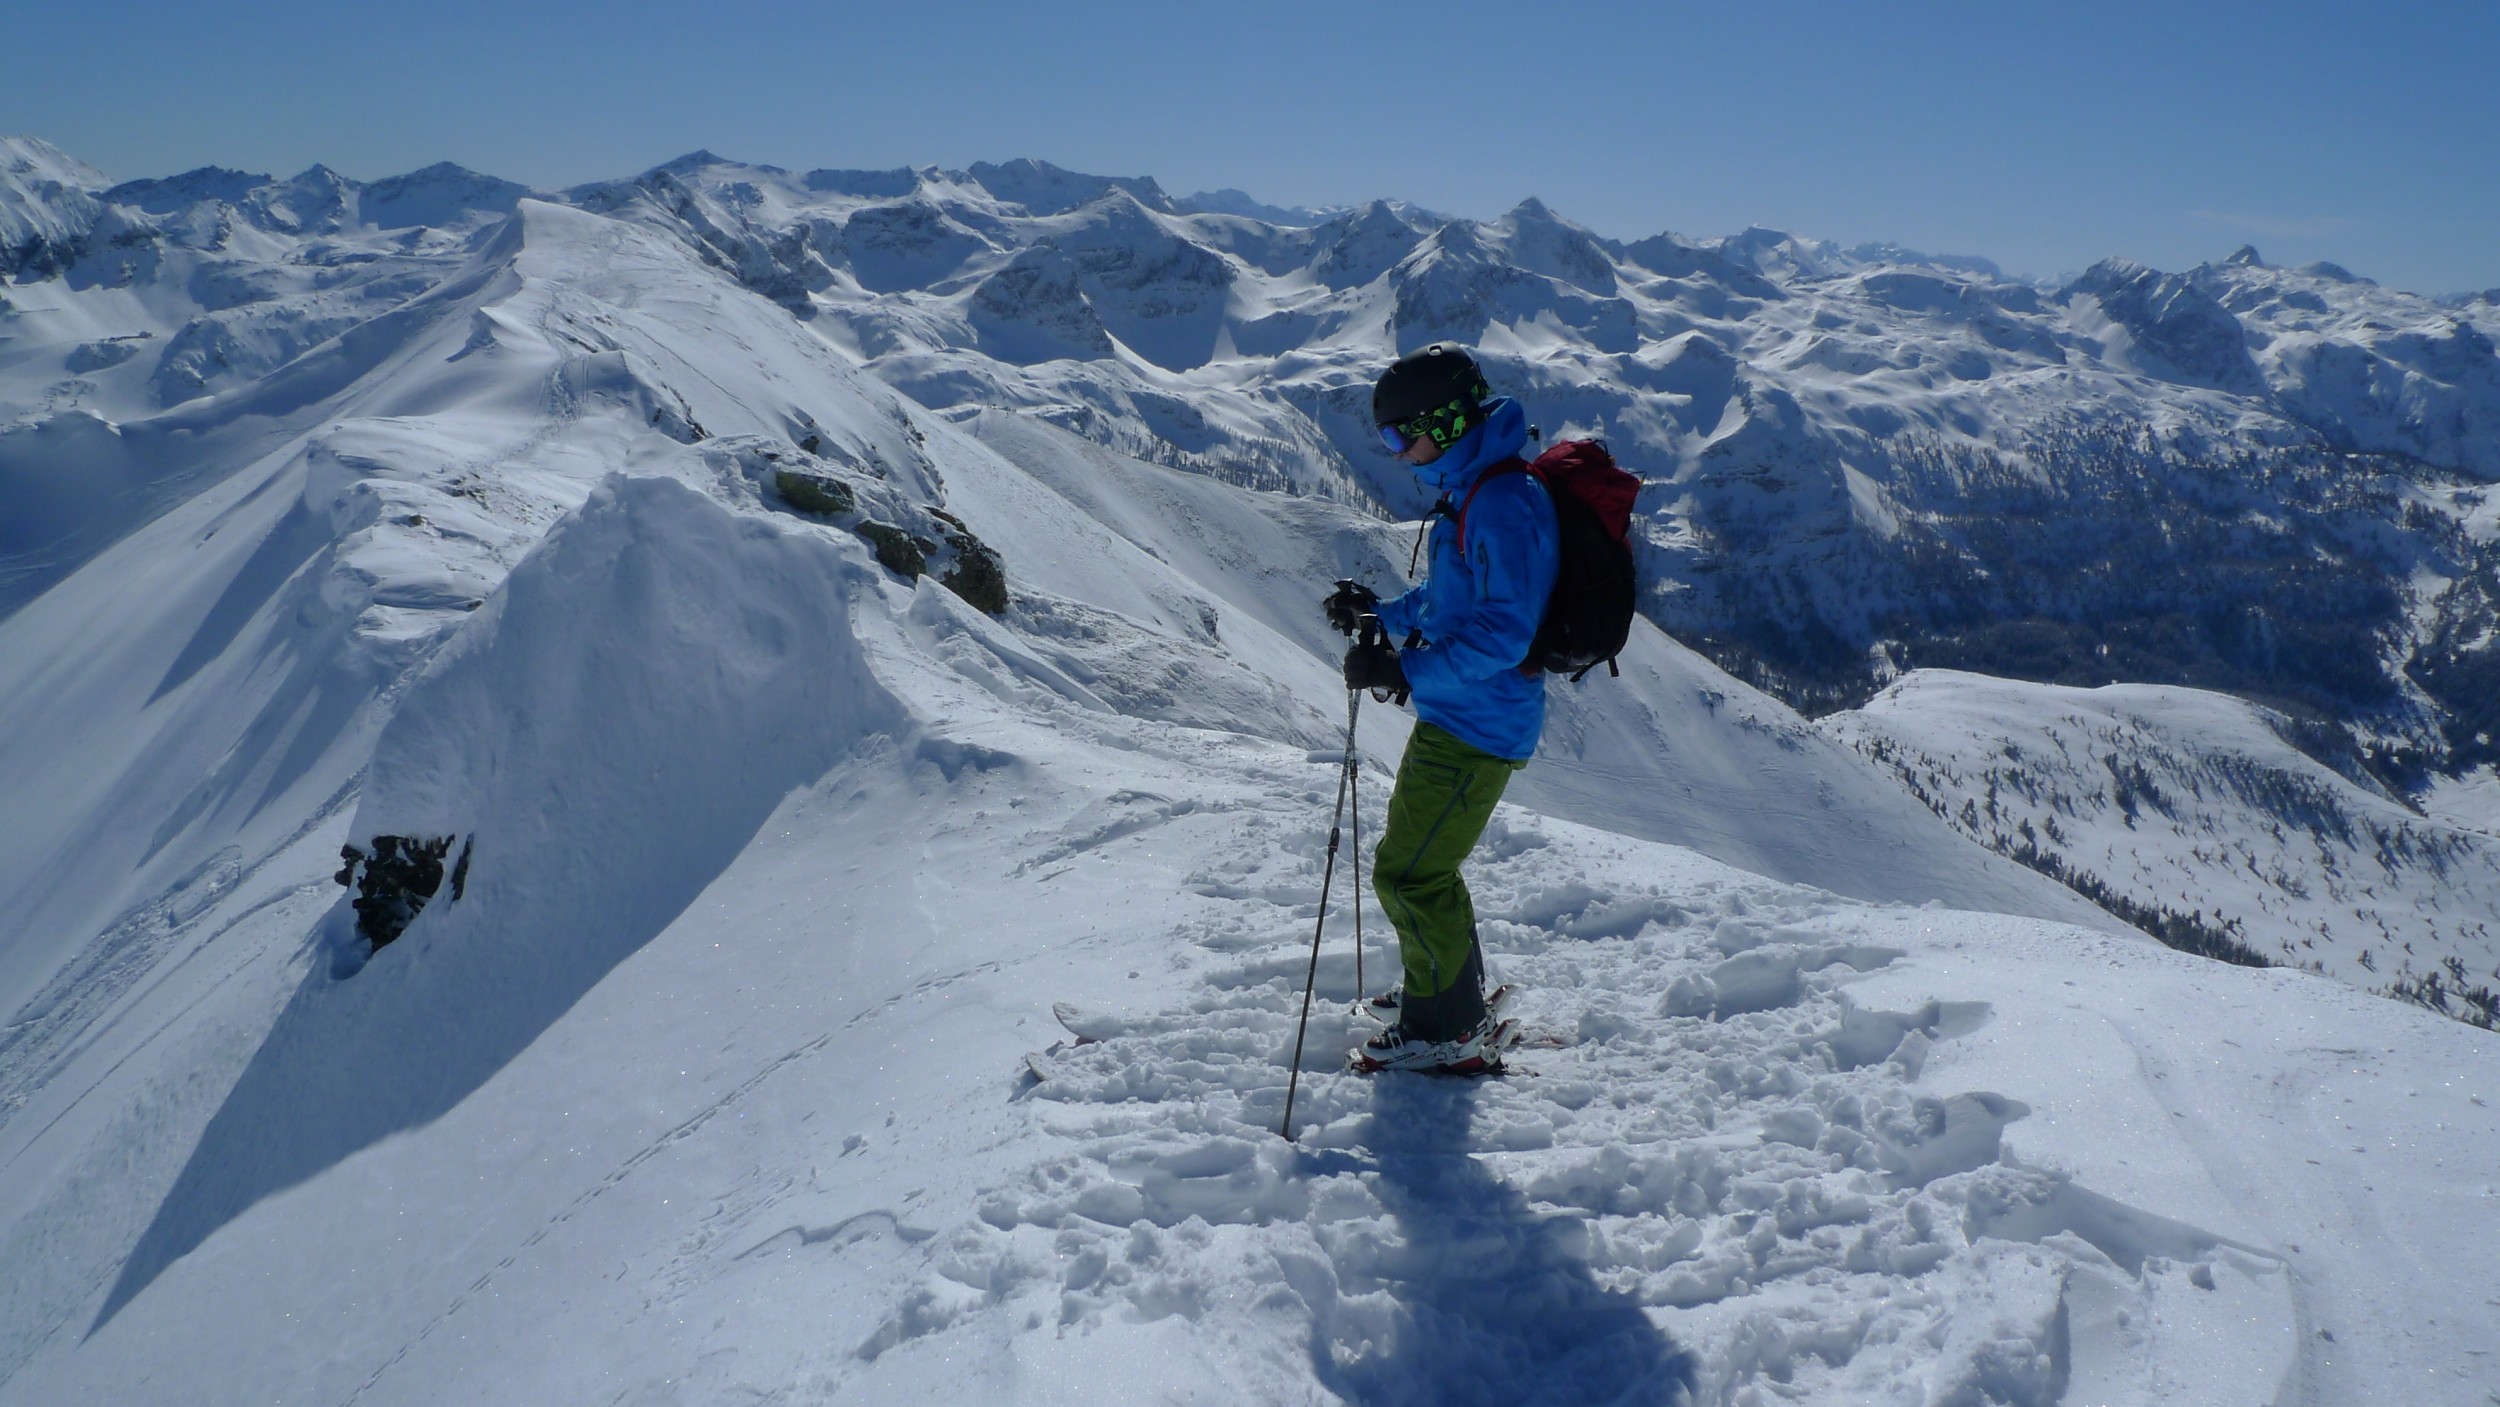 Ski Touring course - beginners